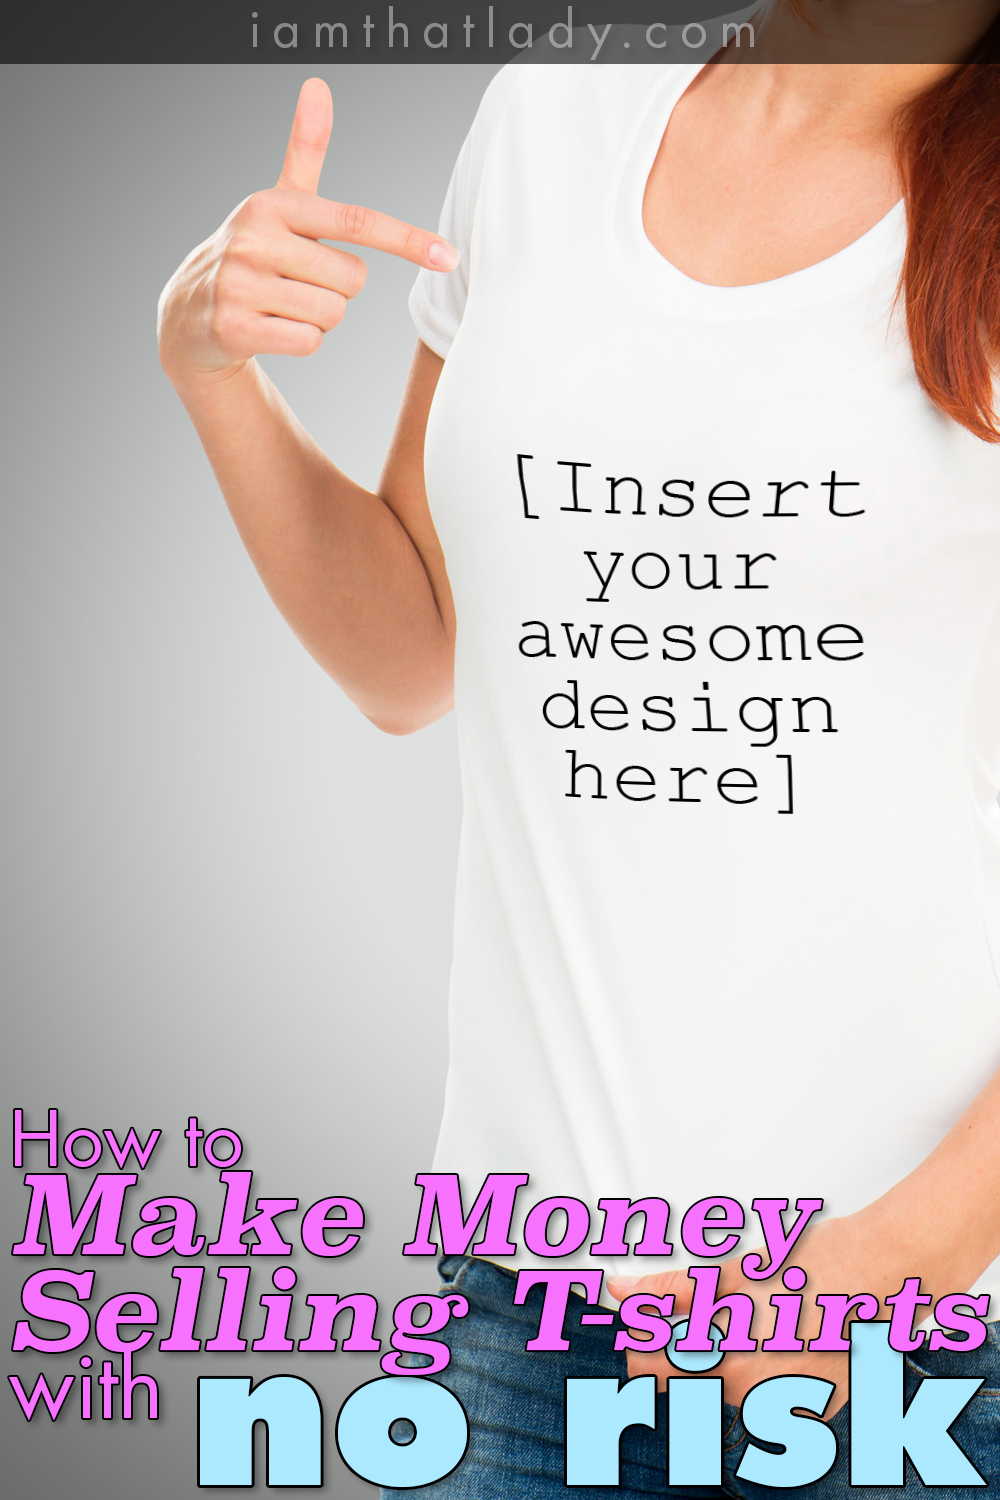 Make money selling t shirts with no risk lauren greutman for How to design and sell t shirts